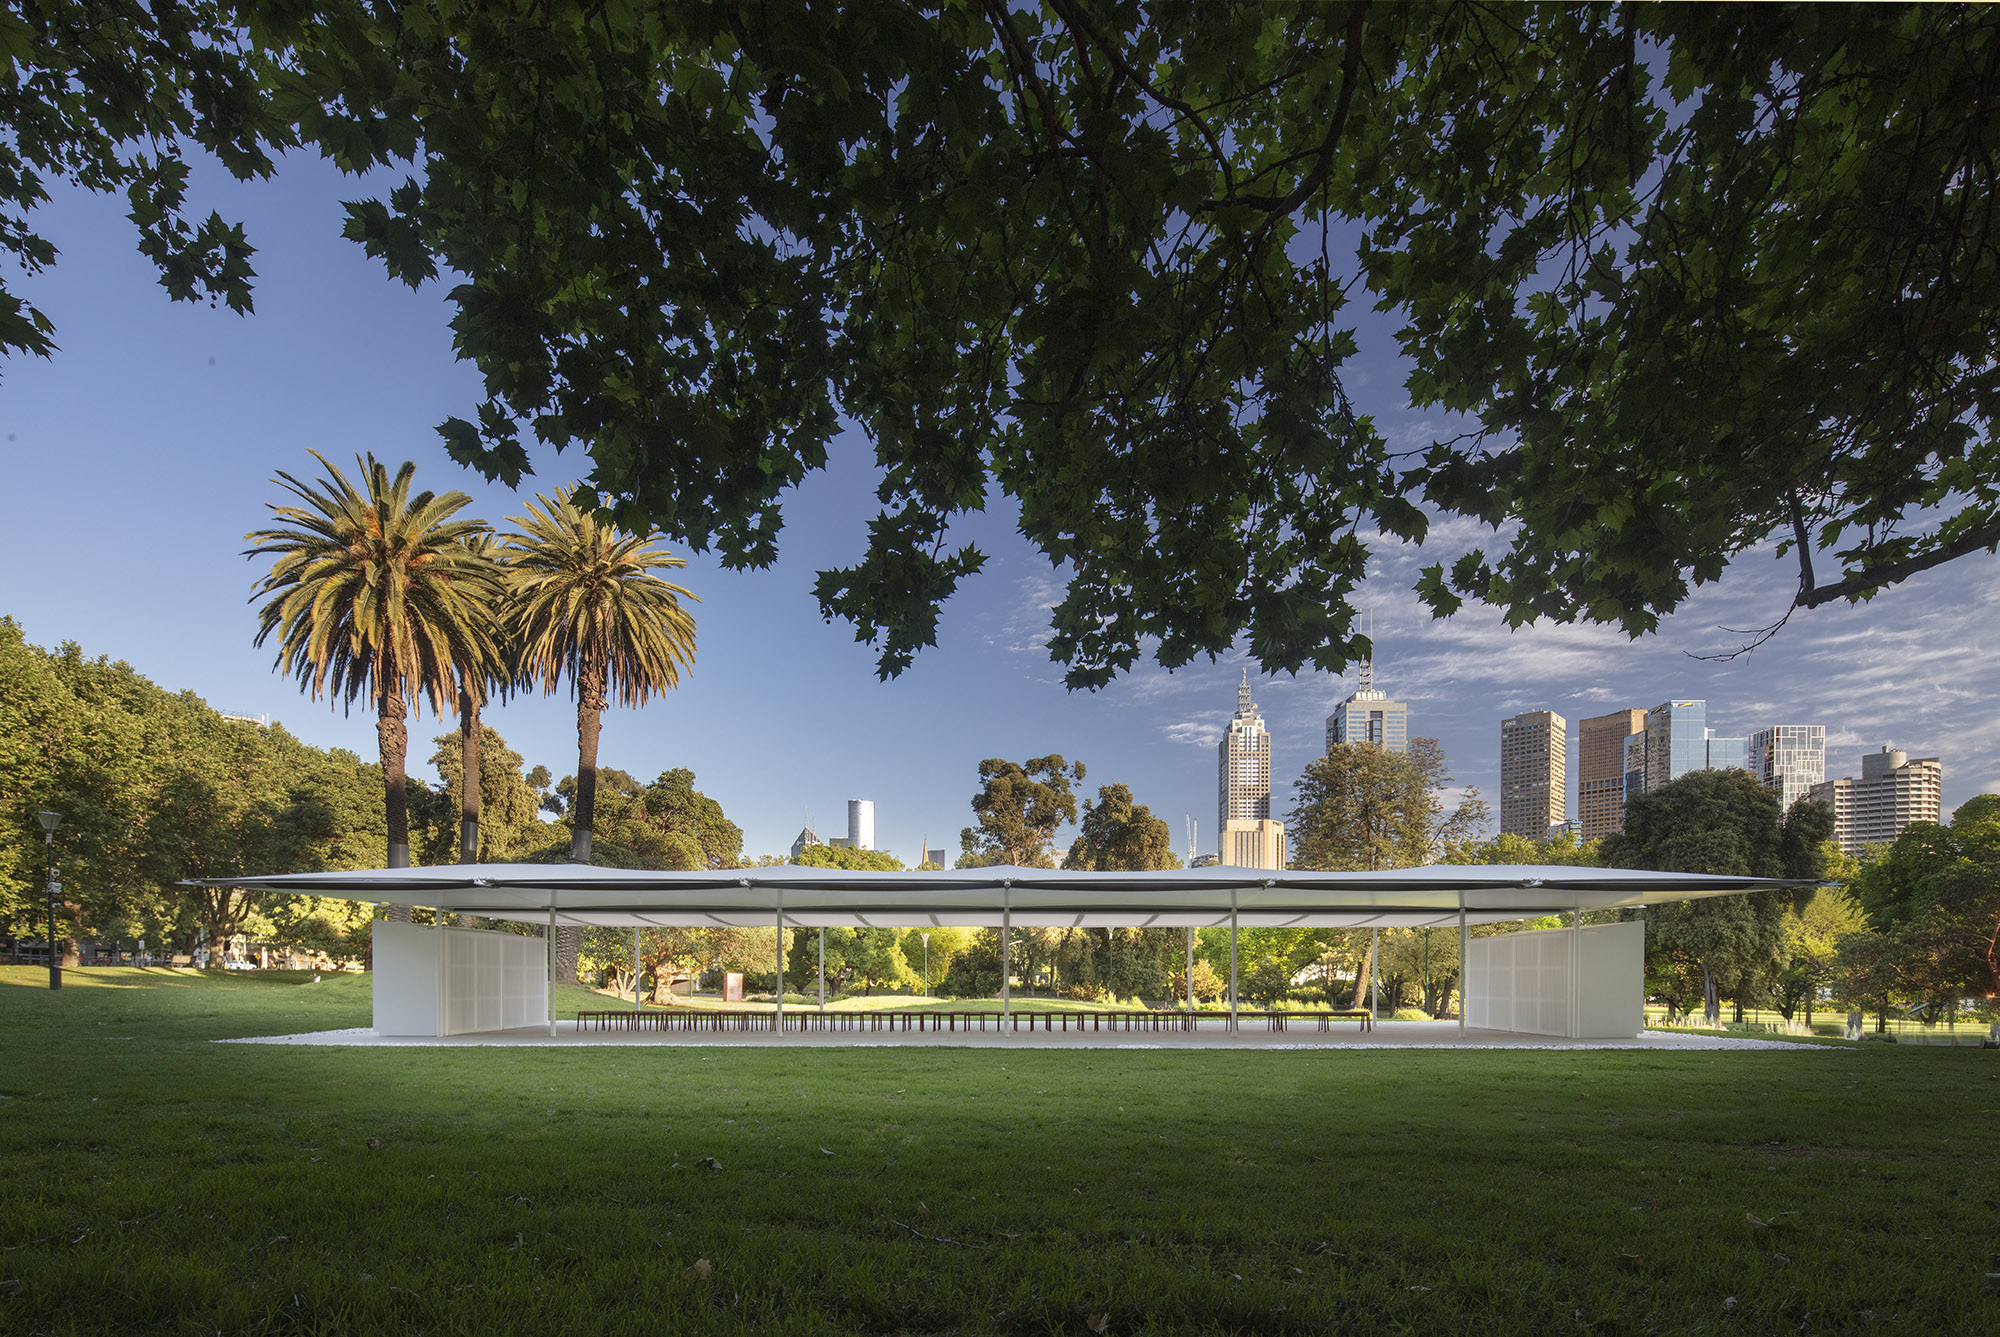 Welcome to MPavilion 2019 by Glenn Murcutt! First bird's eye video and photos